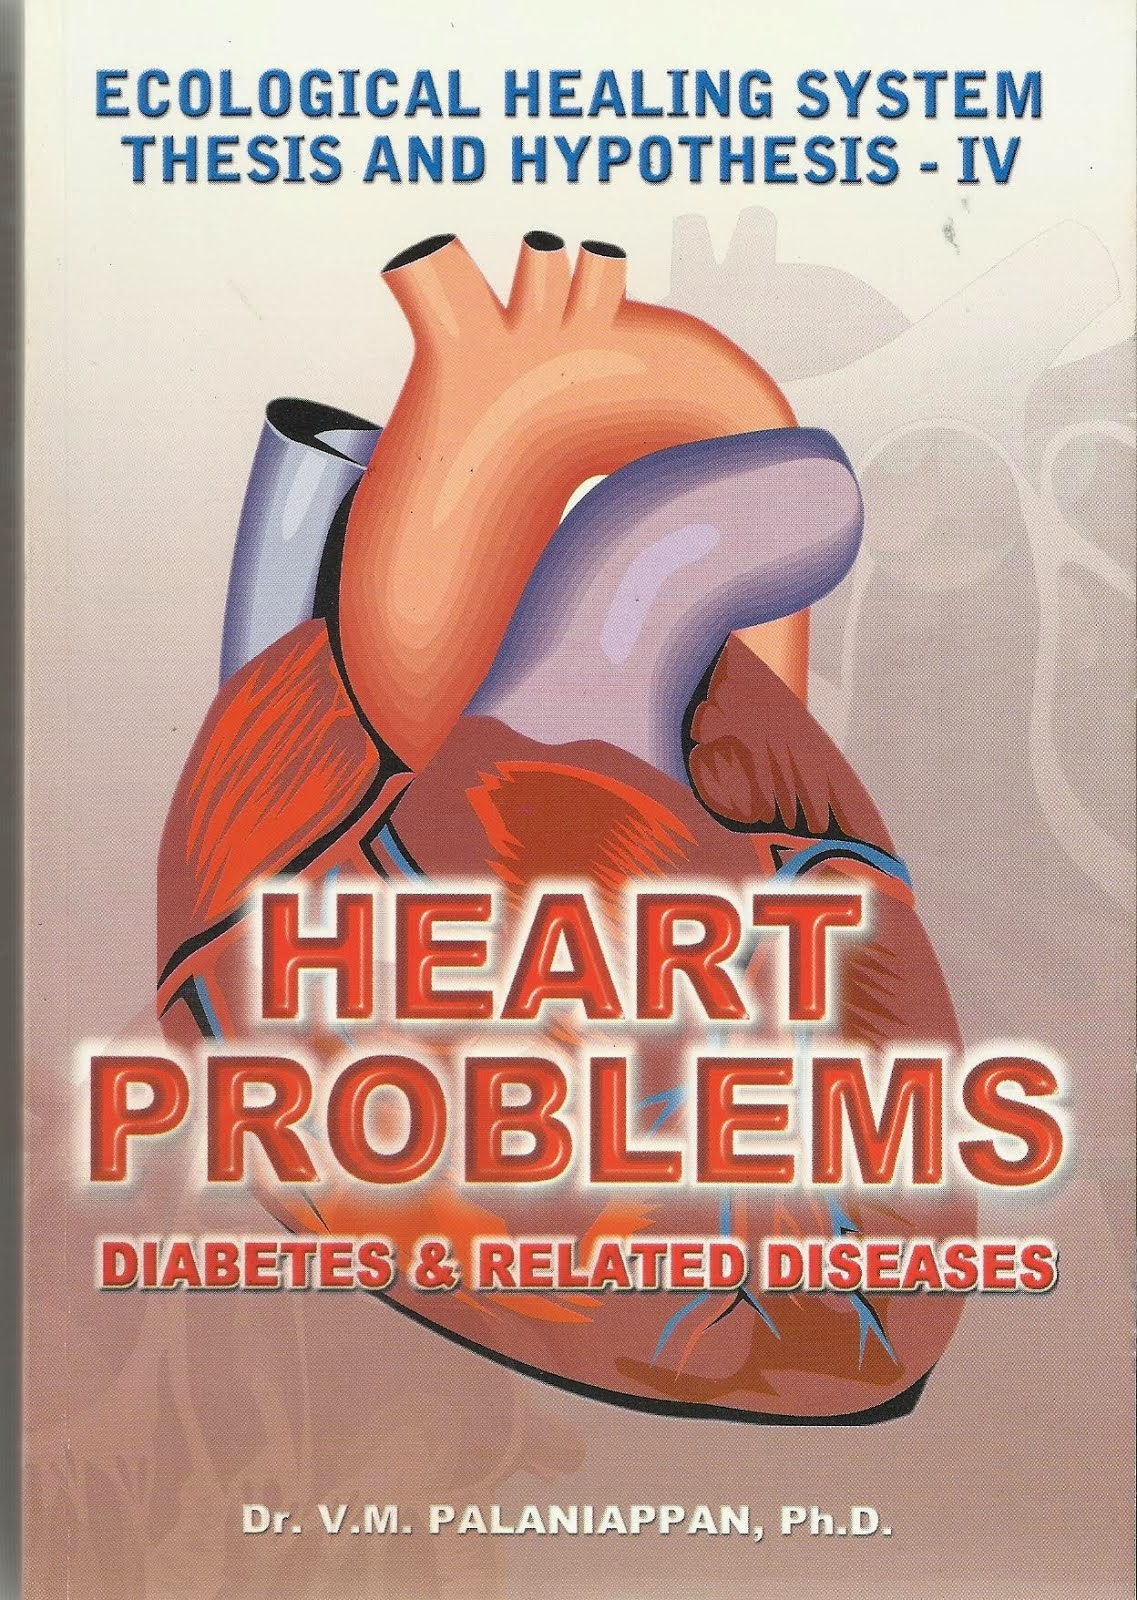 HEART PROBLEMS, DIABETES, AND RELATED DISEASES